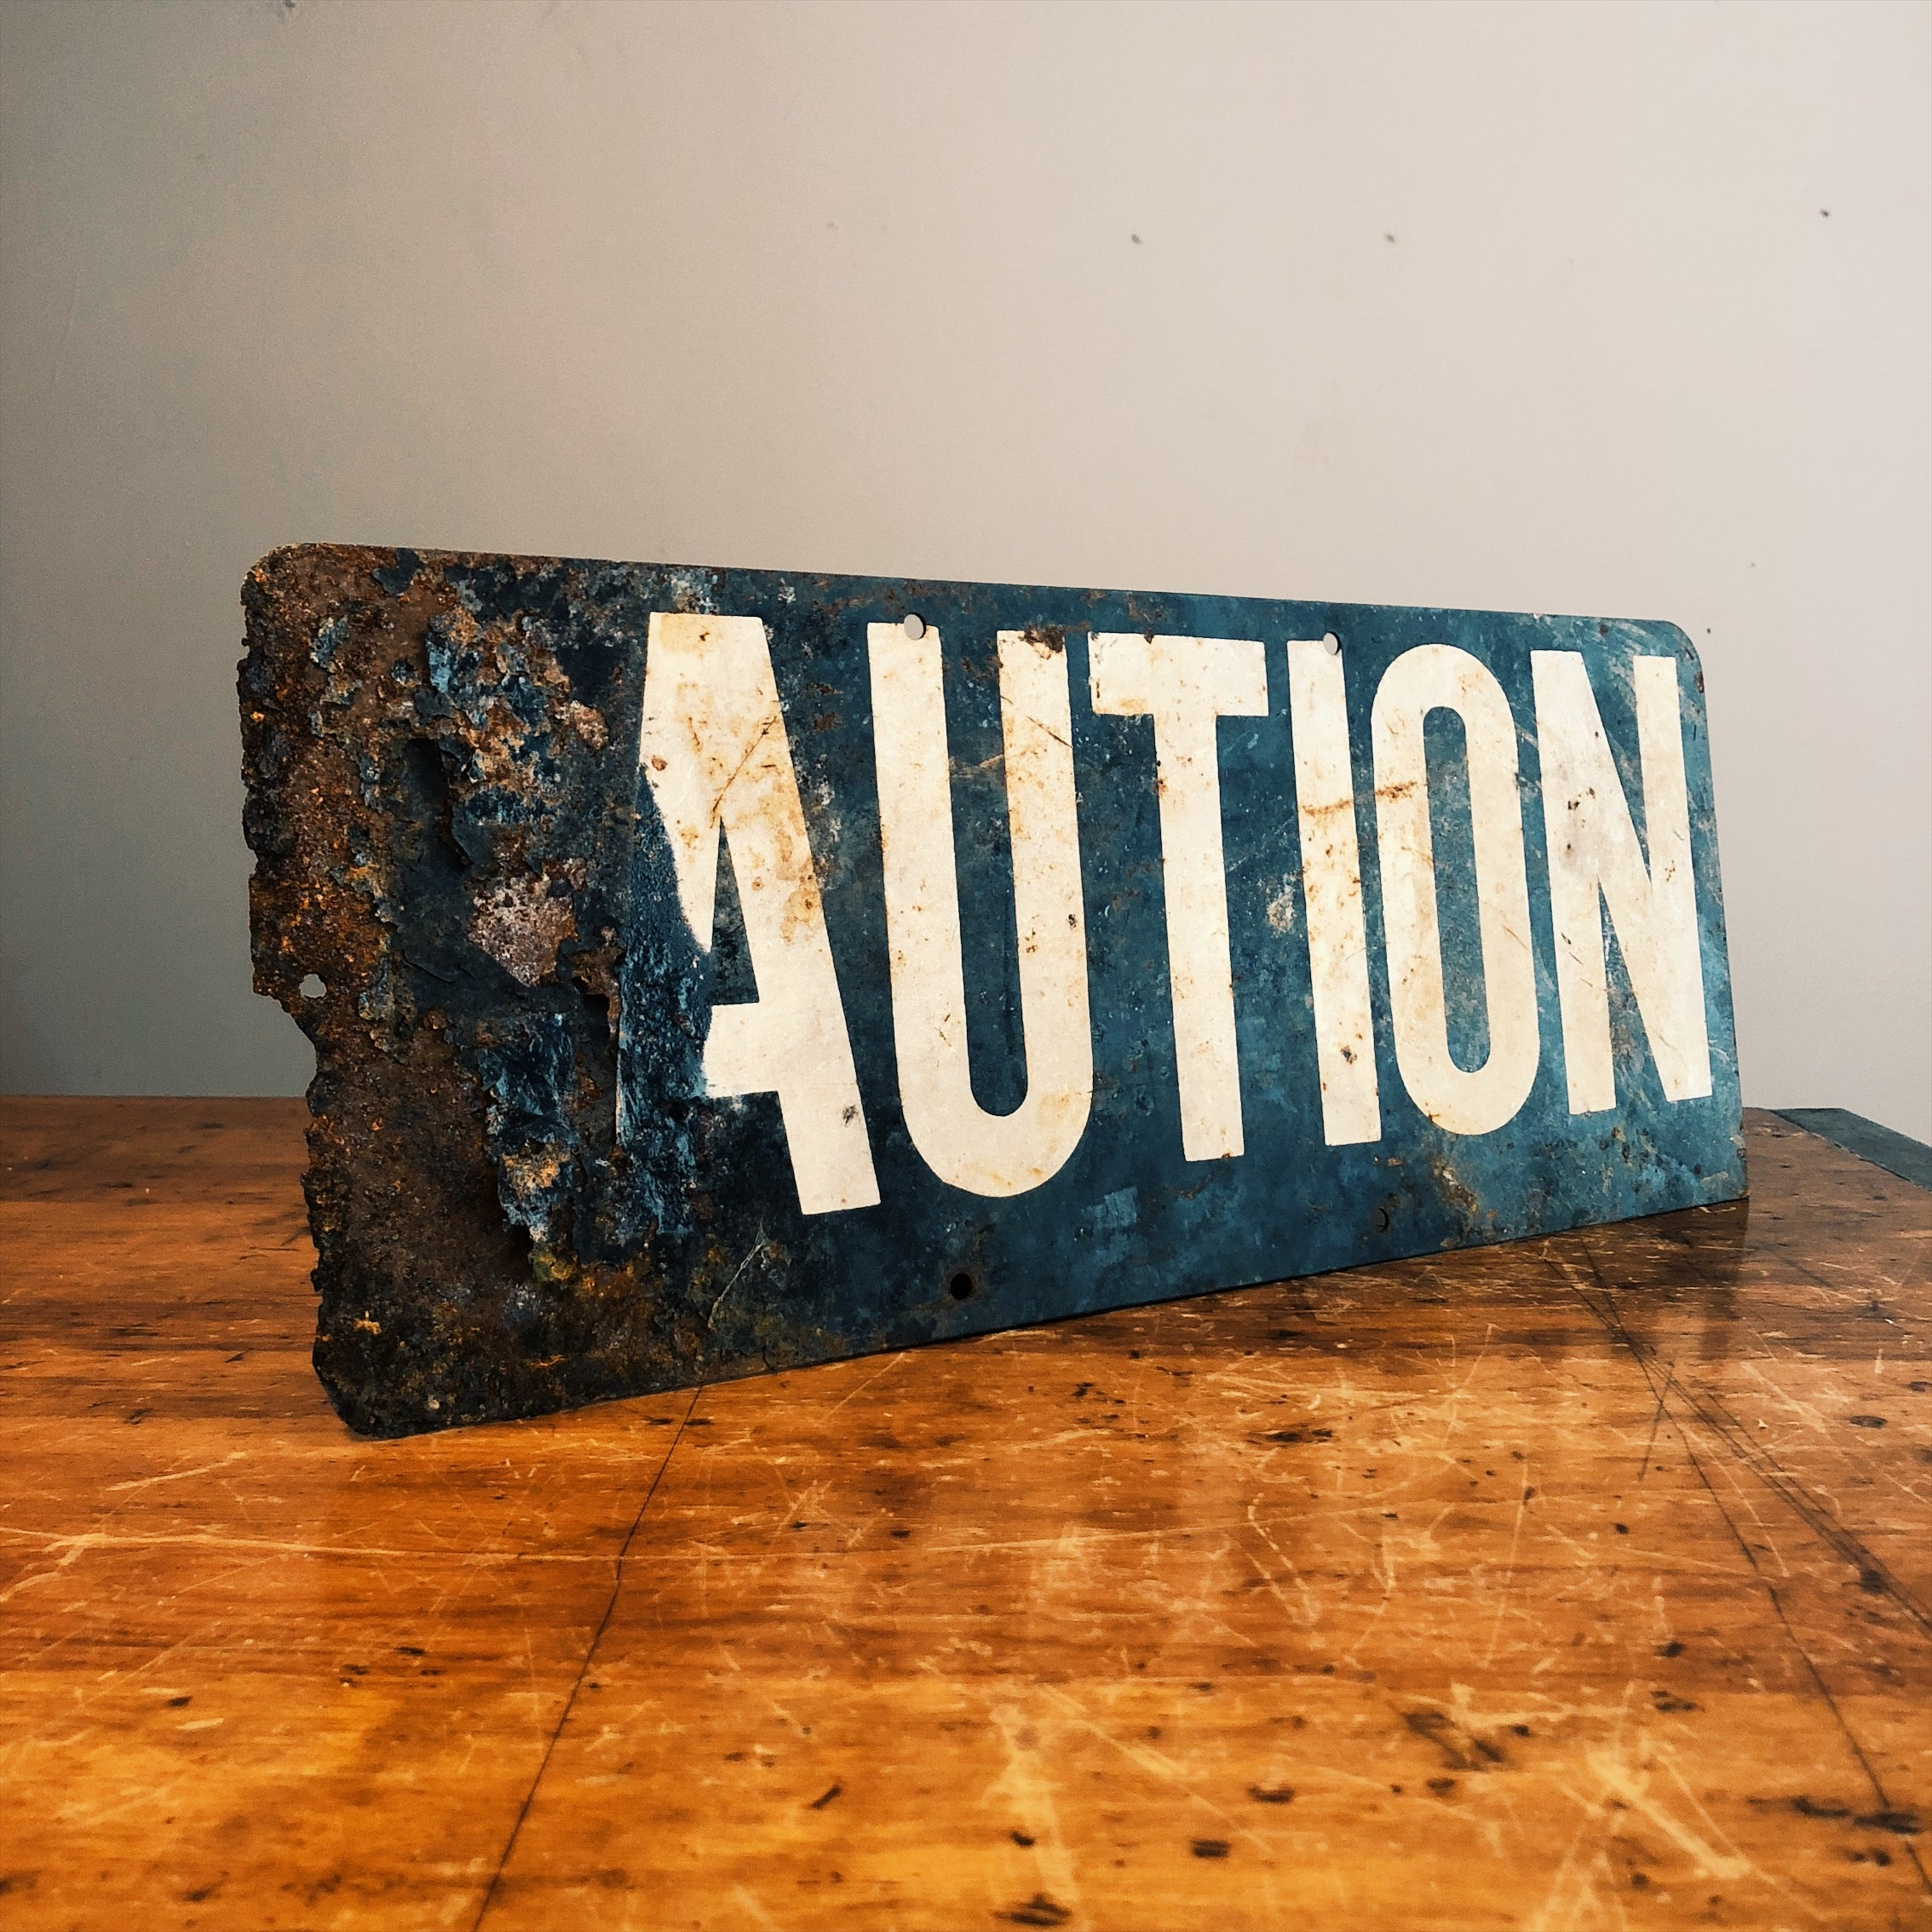 Corrosion on the Vintage Caution Railroad Sign